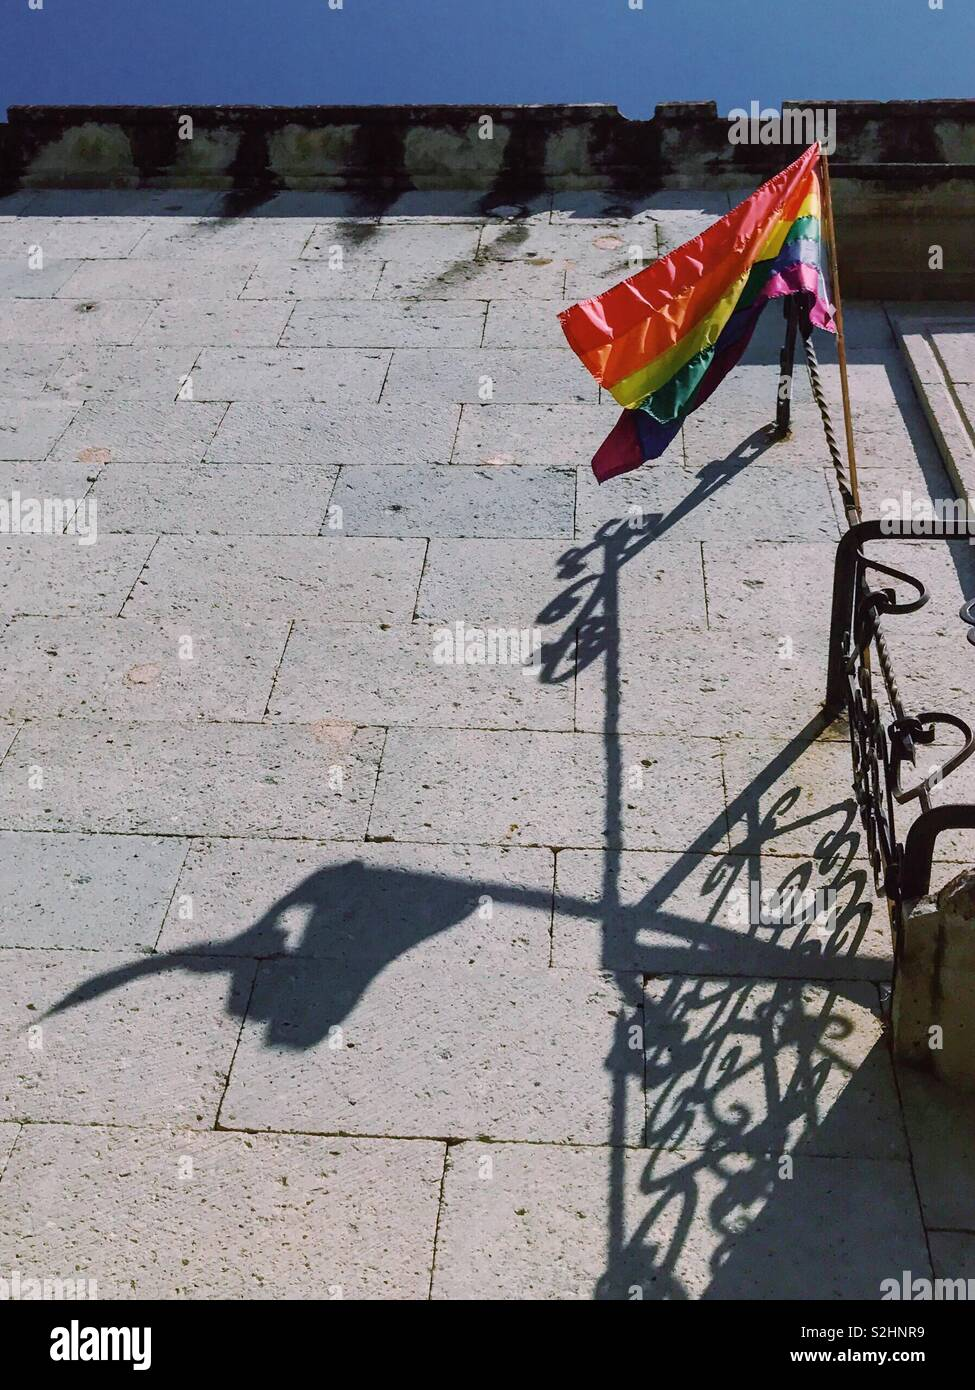 B-side of Bright Side. Bright LGBTQ flag and its torn shadow on the wall of the house. Often behind bright appearance we do not see hidden suffering and traumas. Oaxaca, Mexico. 16th of February 2019 - Stock Image